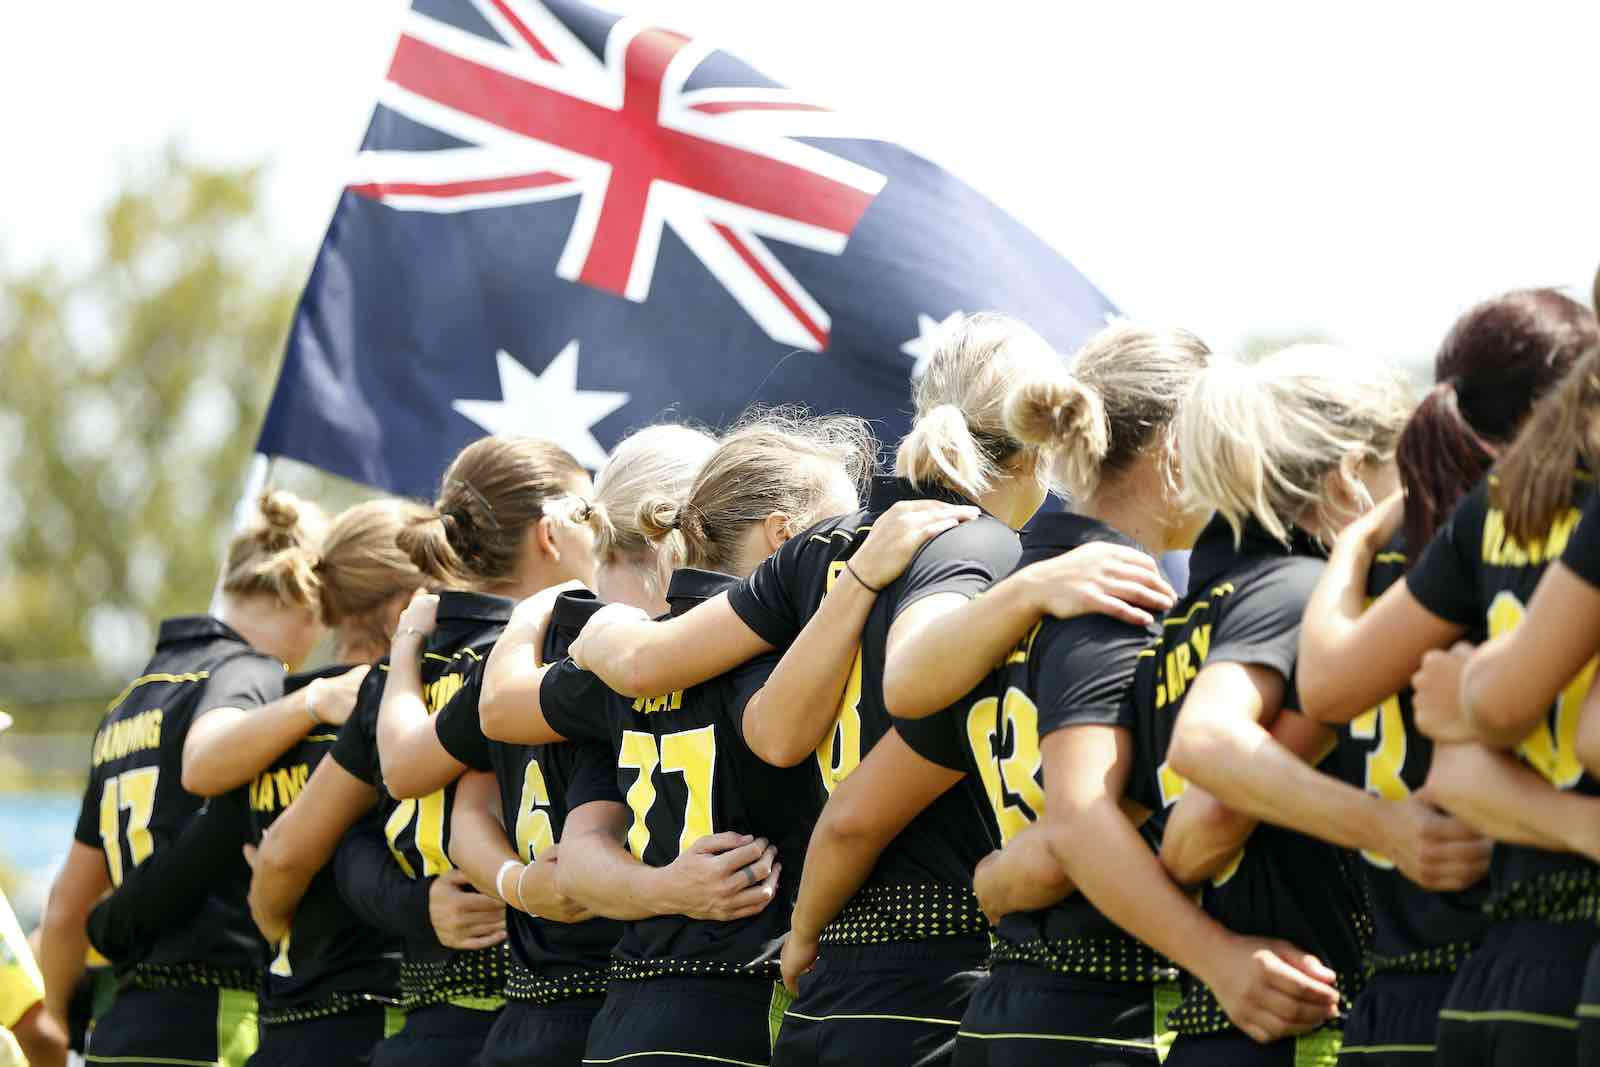 The Australian national anthem is played before the Women's Twenty20 cricket tri-series final between Australia and India at Junction Oval, Melbourne, February 2020 (Darrian Traynor/Cricket Australia via Getty Images)